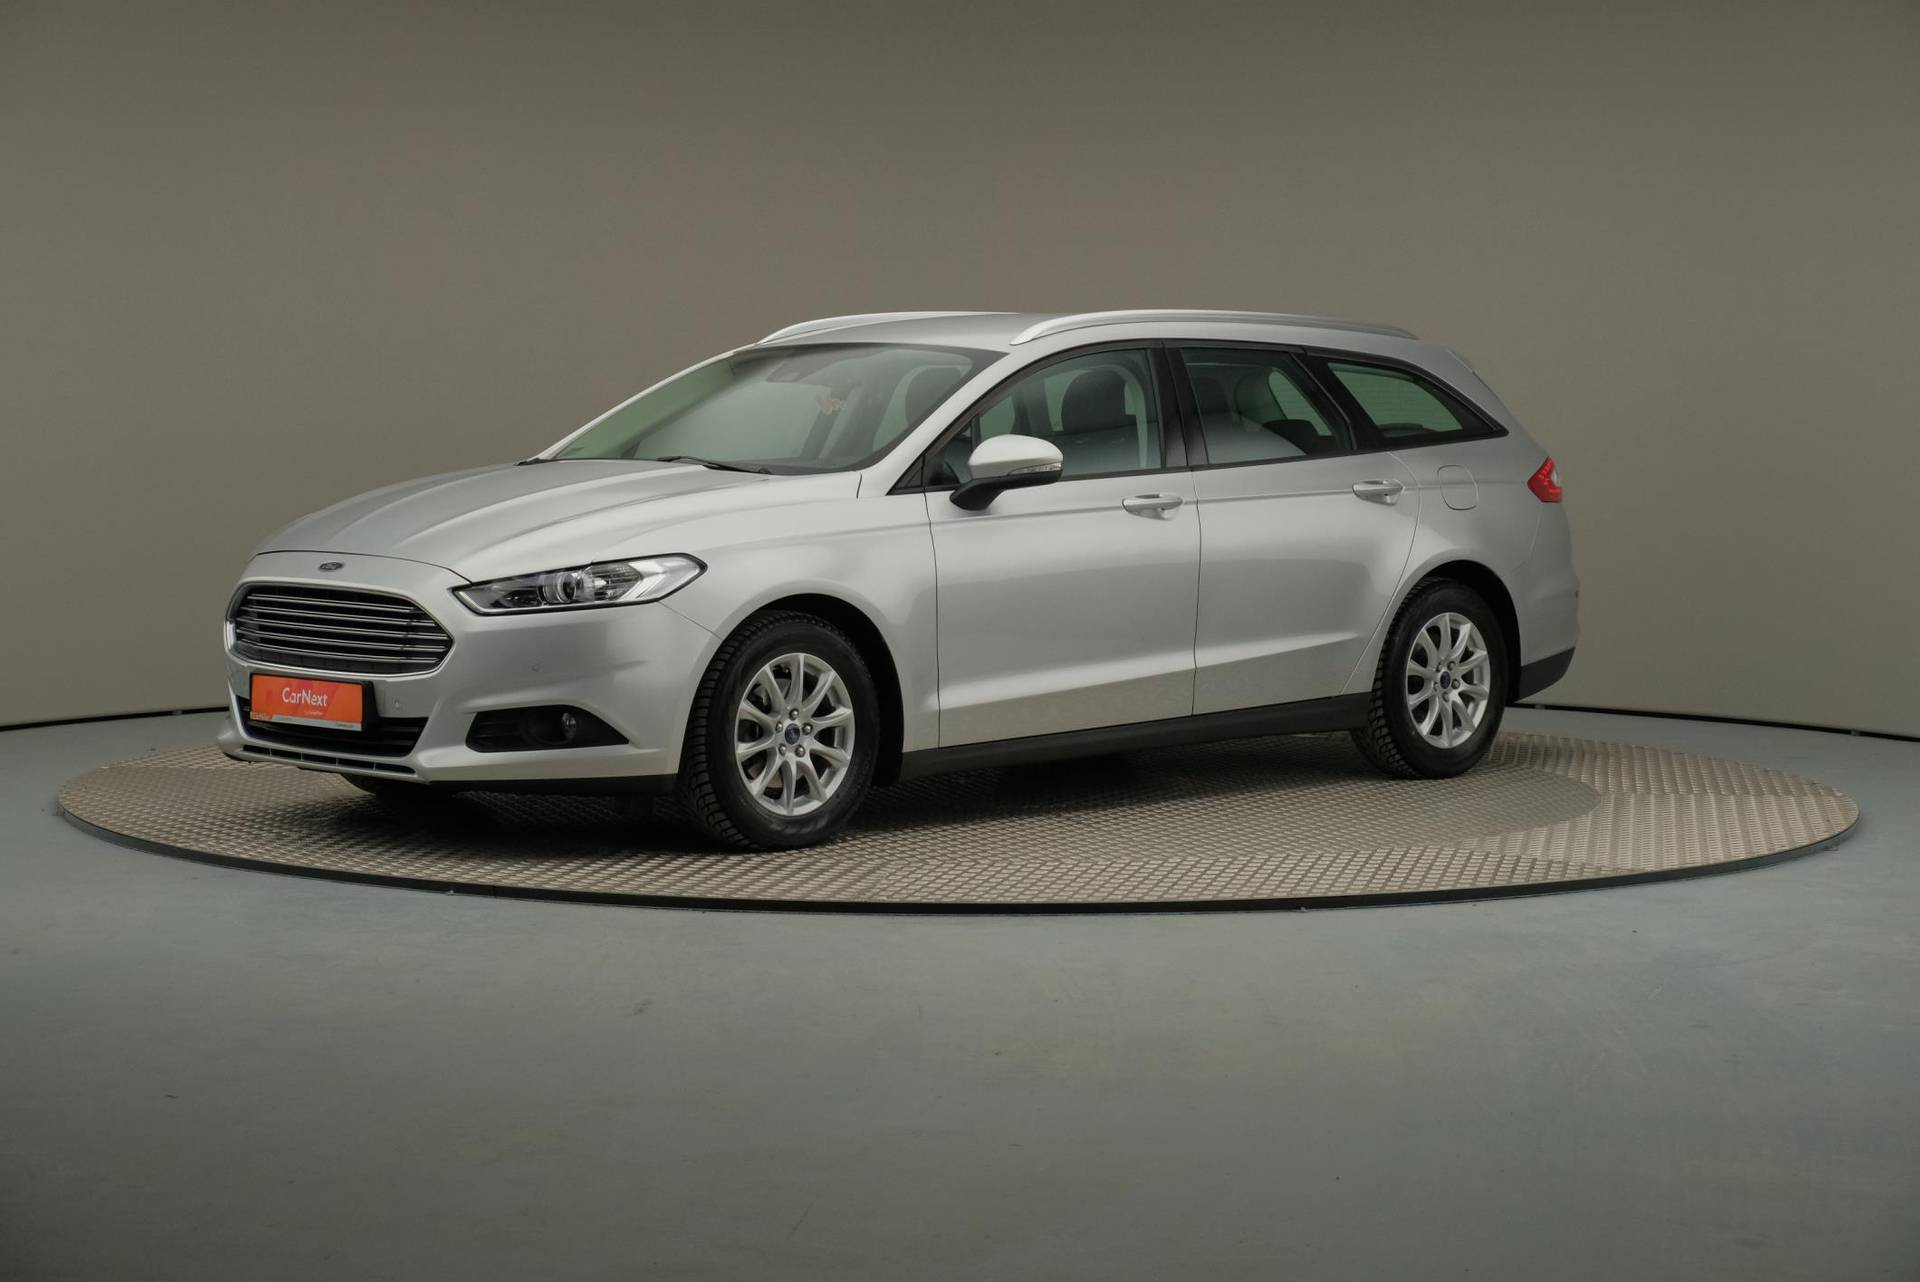 Ford Mondeo Turnier 1.5 Eco Boost Start-Stopp, Trend, 360-image0